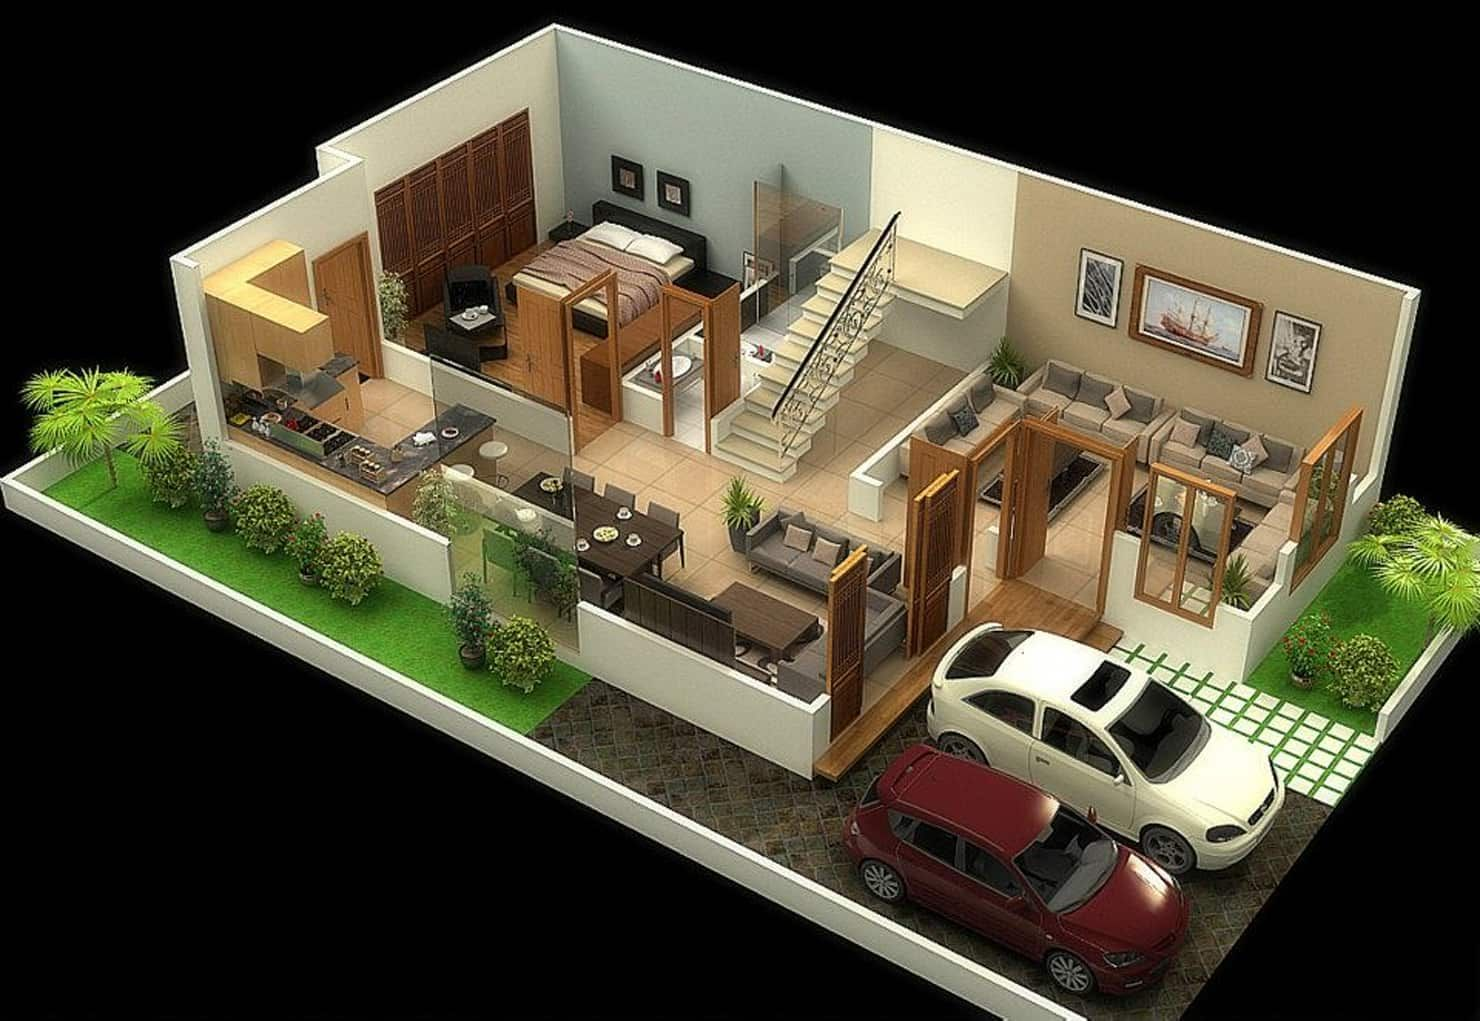 Asian Style Walls Floors By Vinyaasa Architecture Design Asian Homify Simple House Design Home Building Design House Front Design